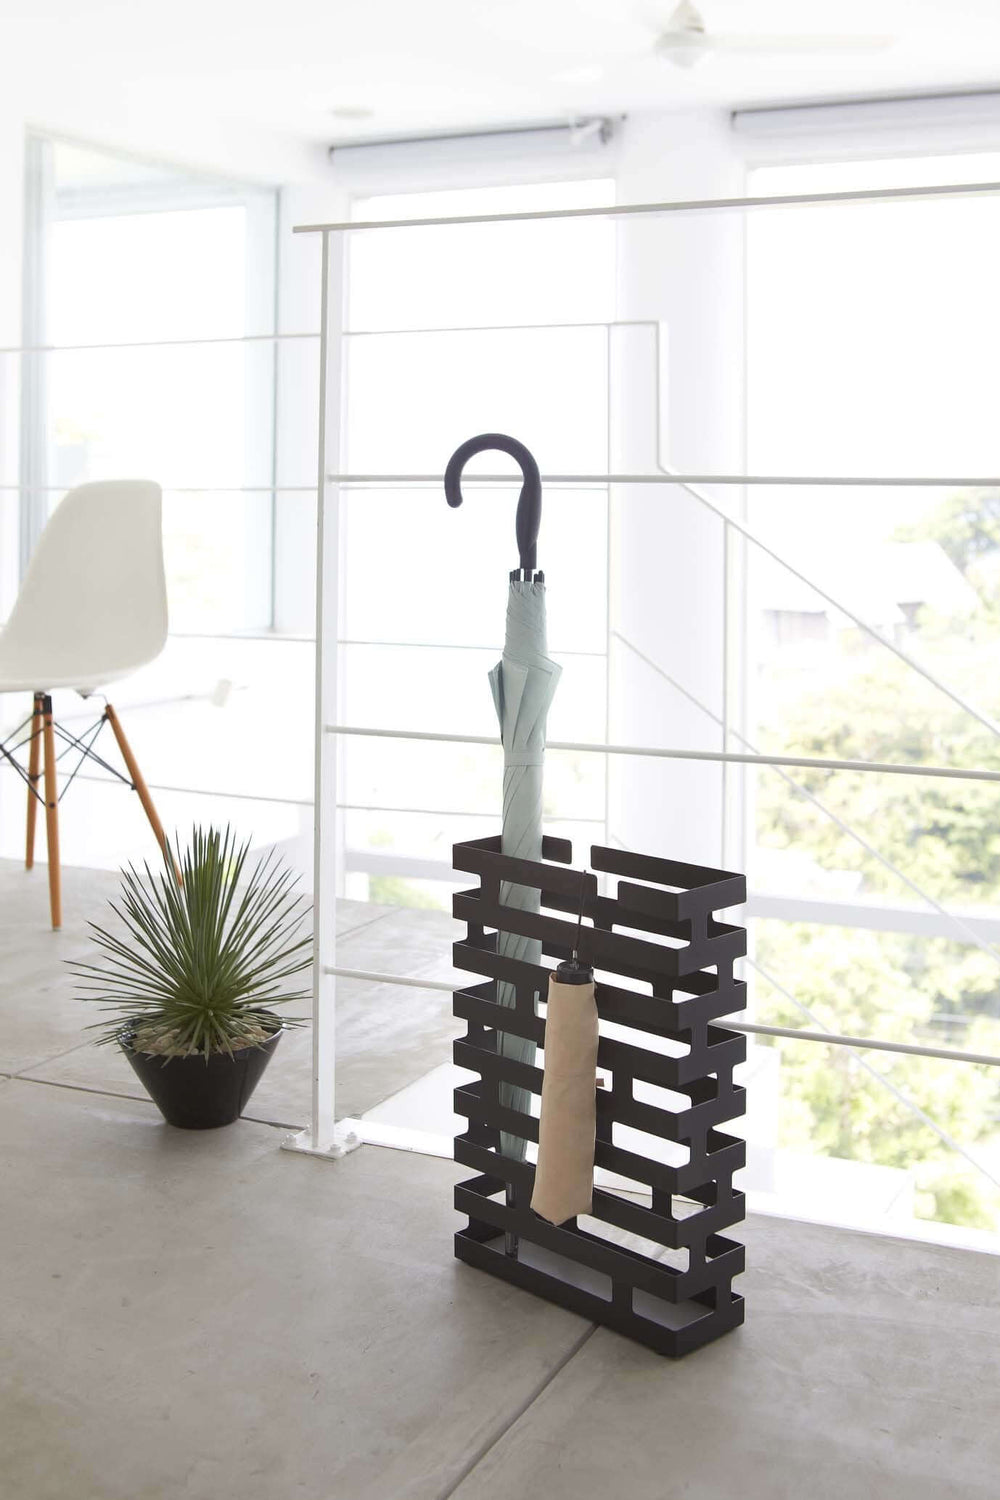 Wide Yamazaki umbrella stand black with brickwork-inspired design holding an umbrella and short umbrella at the entrance.